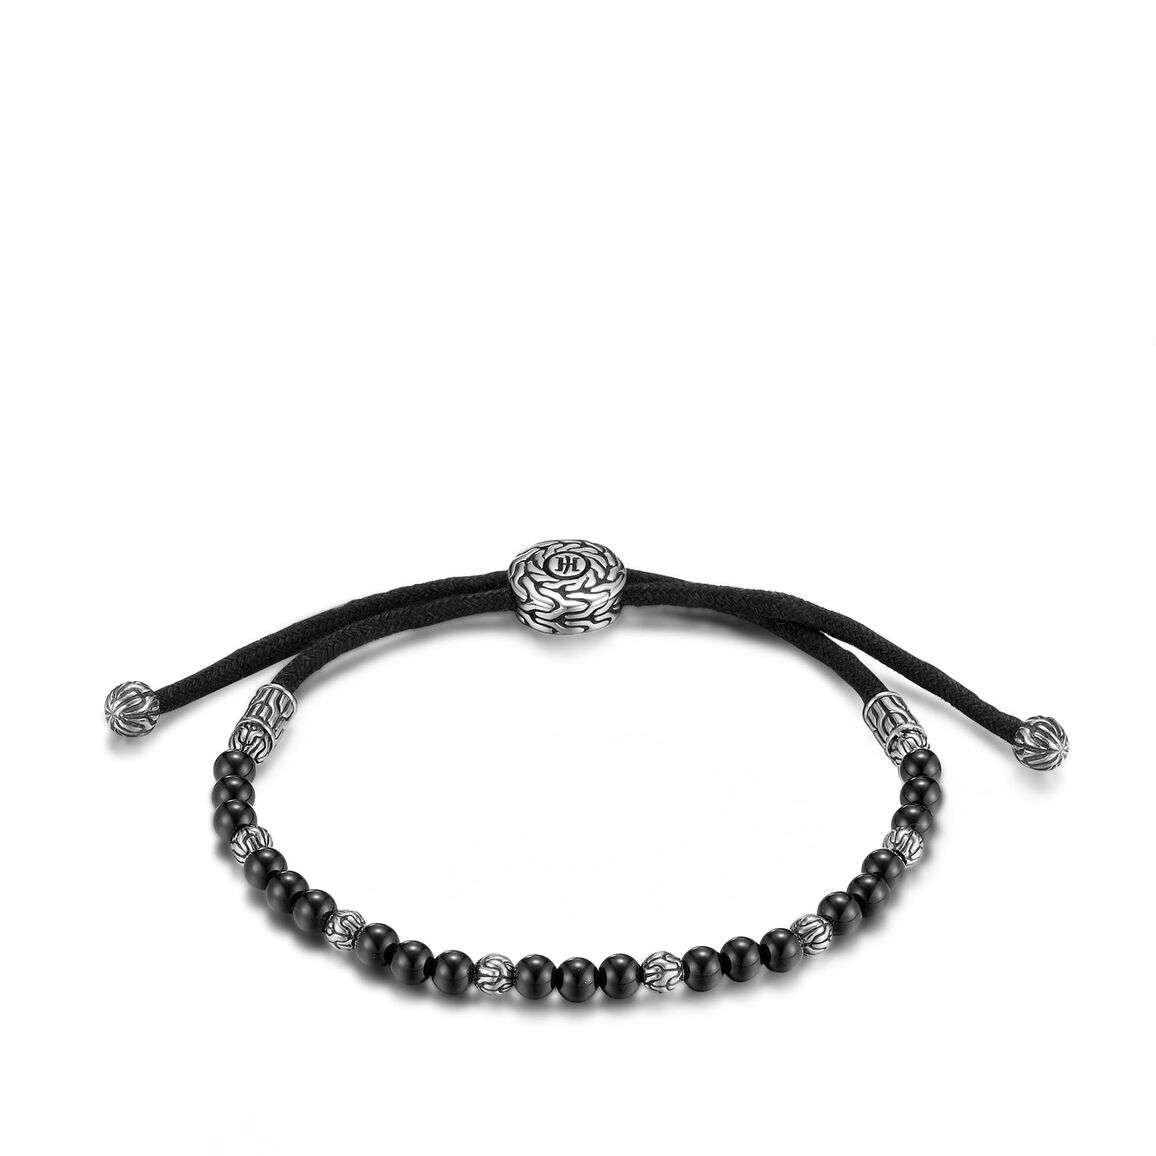 Men's Classic Chain Pull Through Bead Bracelet in Silver